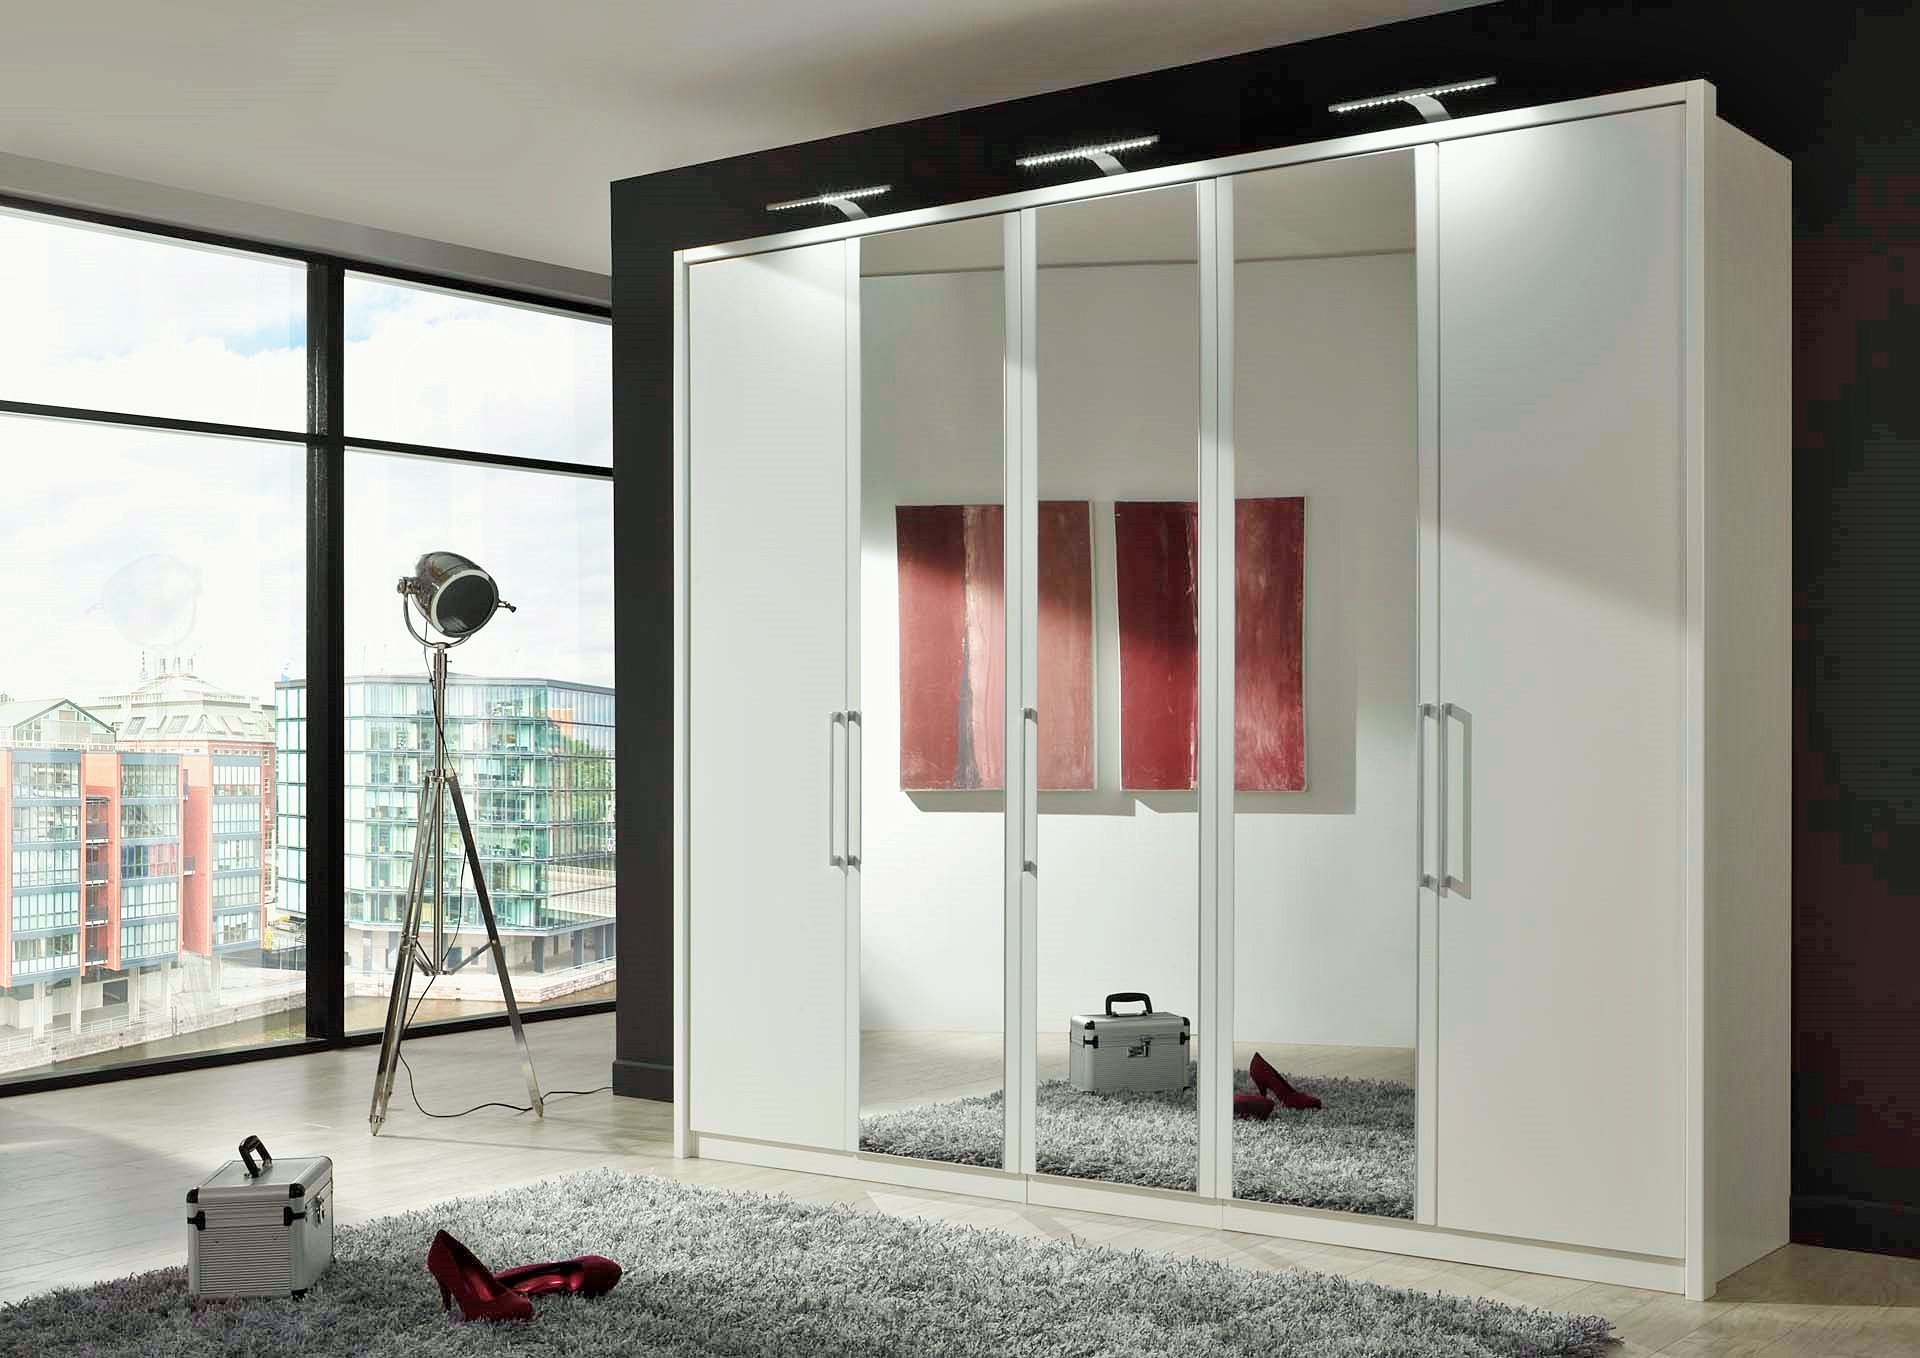 Stylform linus hinged door wardrobe wood and mirror - Grande armoire chambre ...